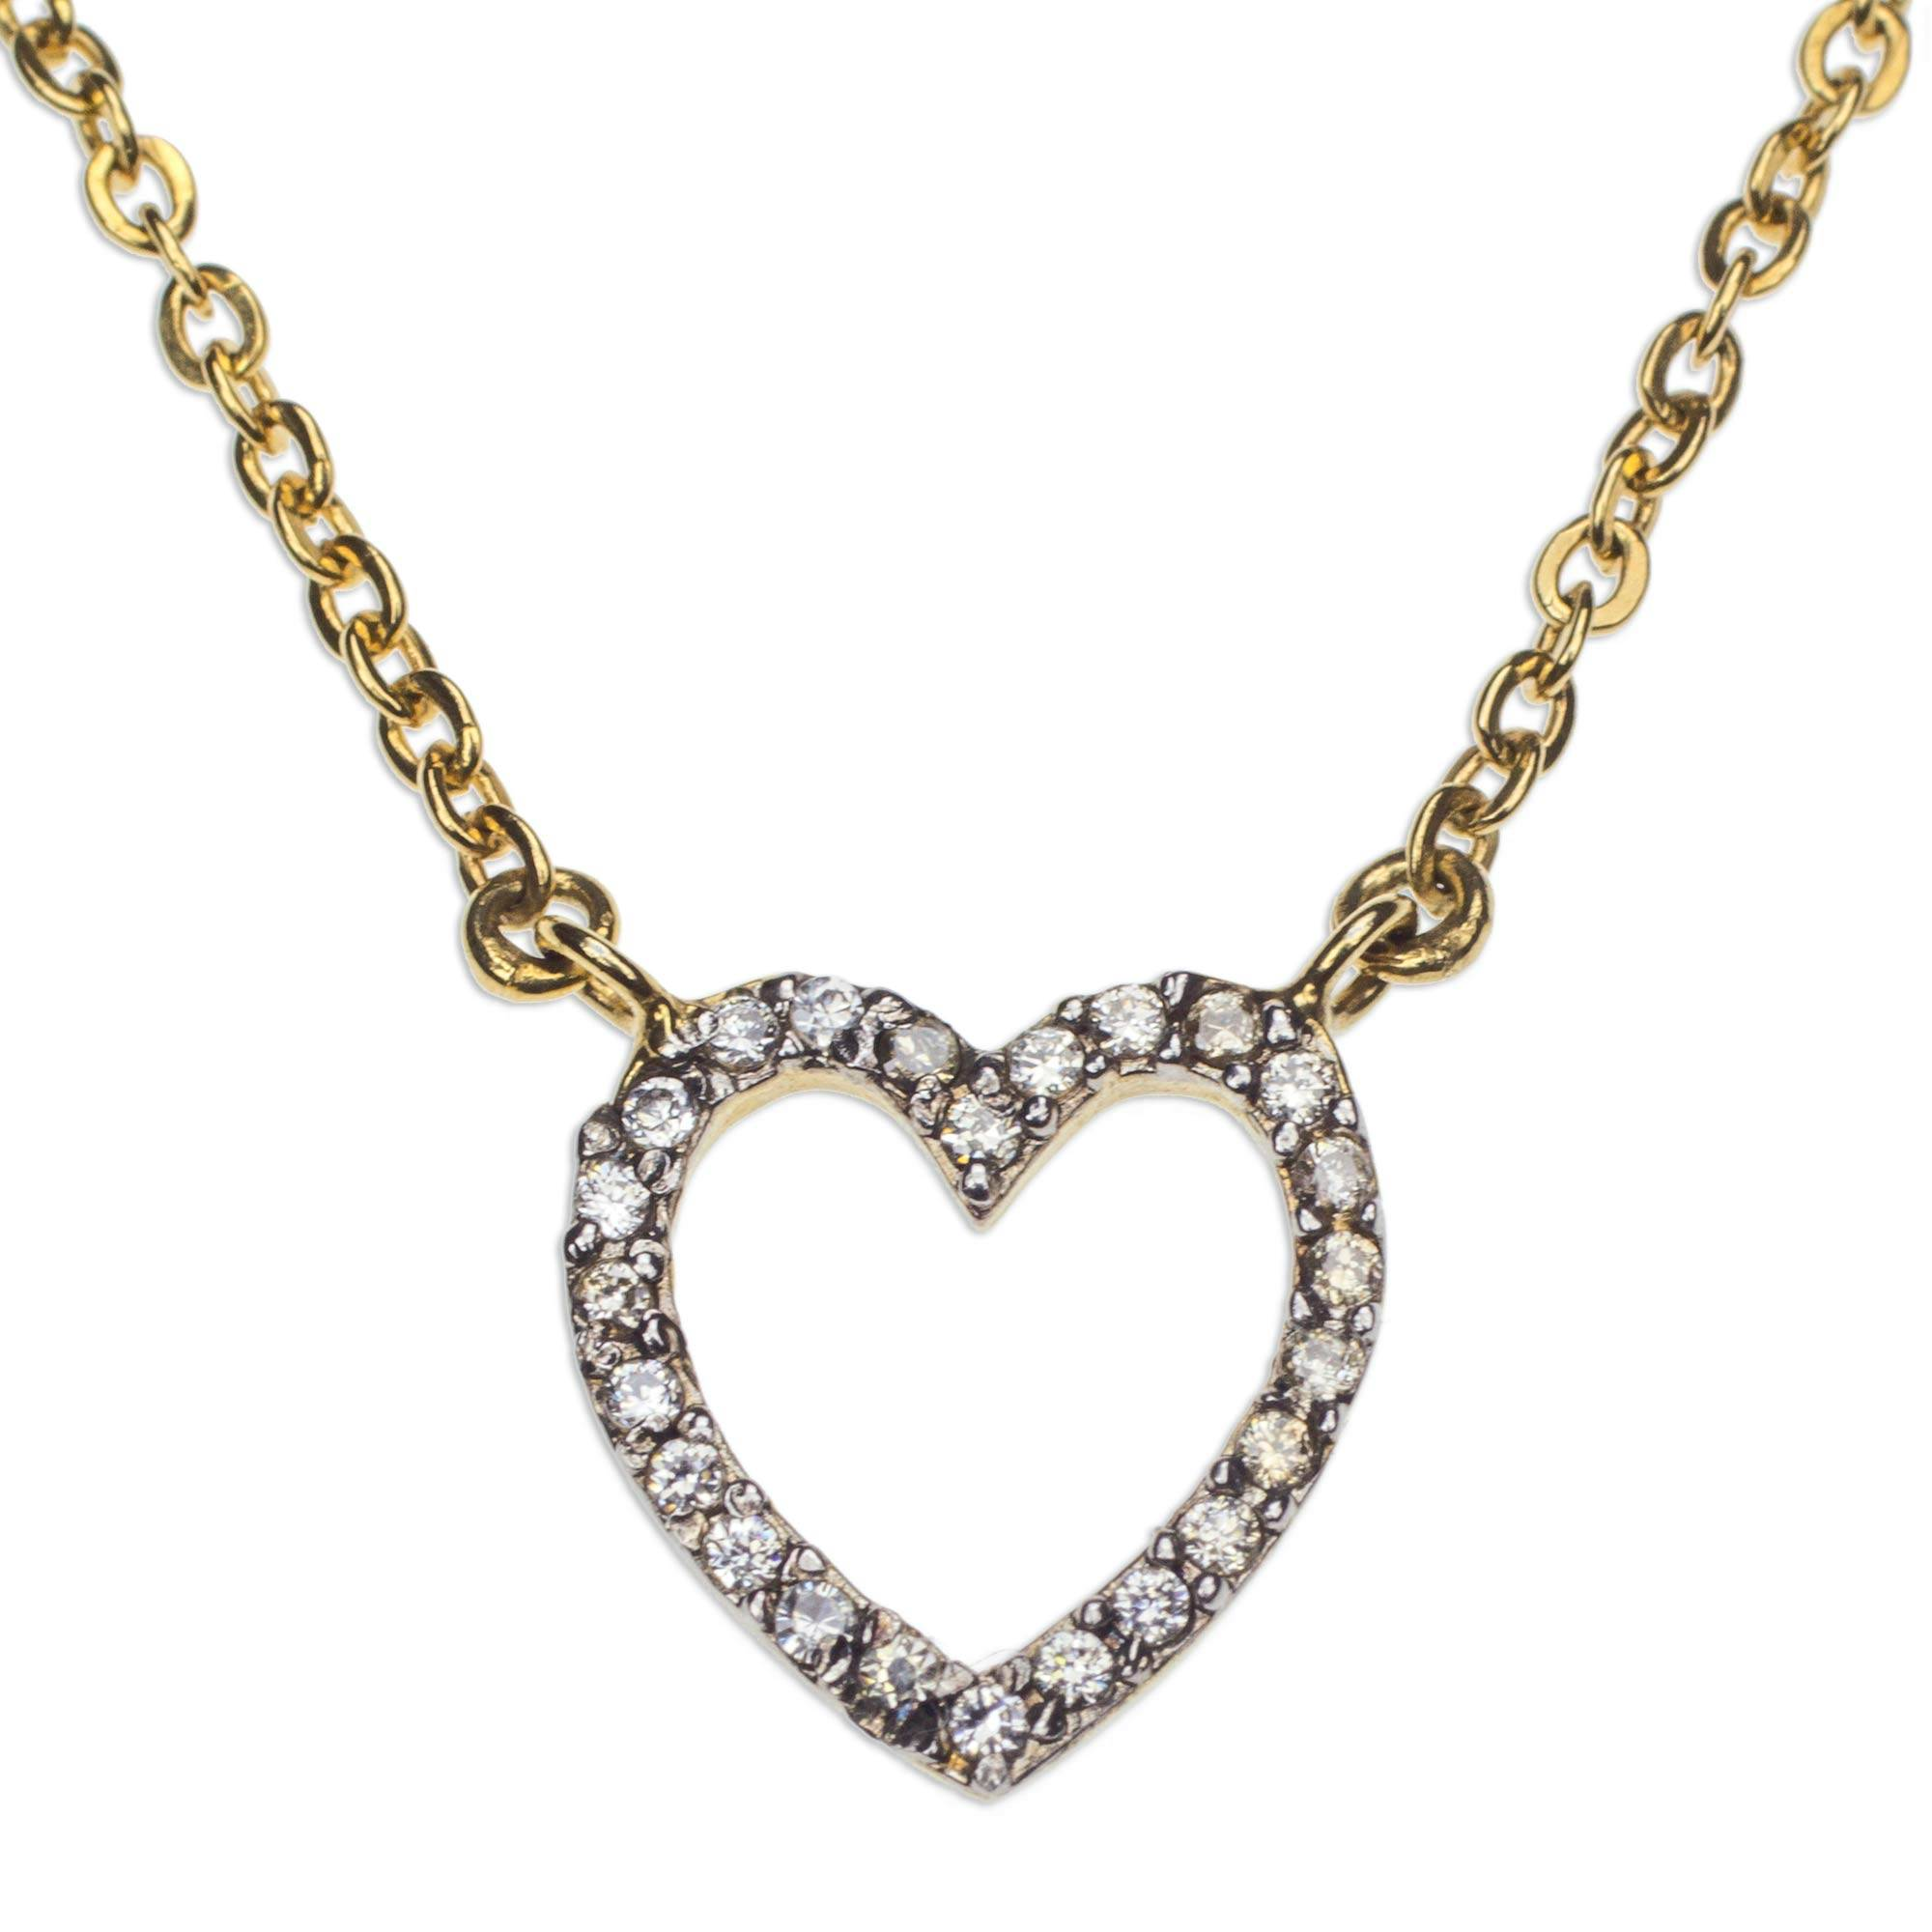 160834395f961 Gold Plated Cubic Zirconia Handmade Heart Pendant Necklace, 'Glamorous  Heart'